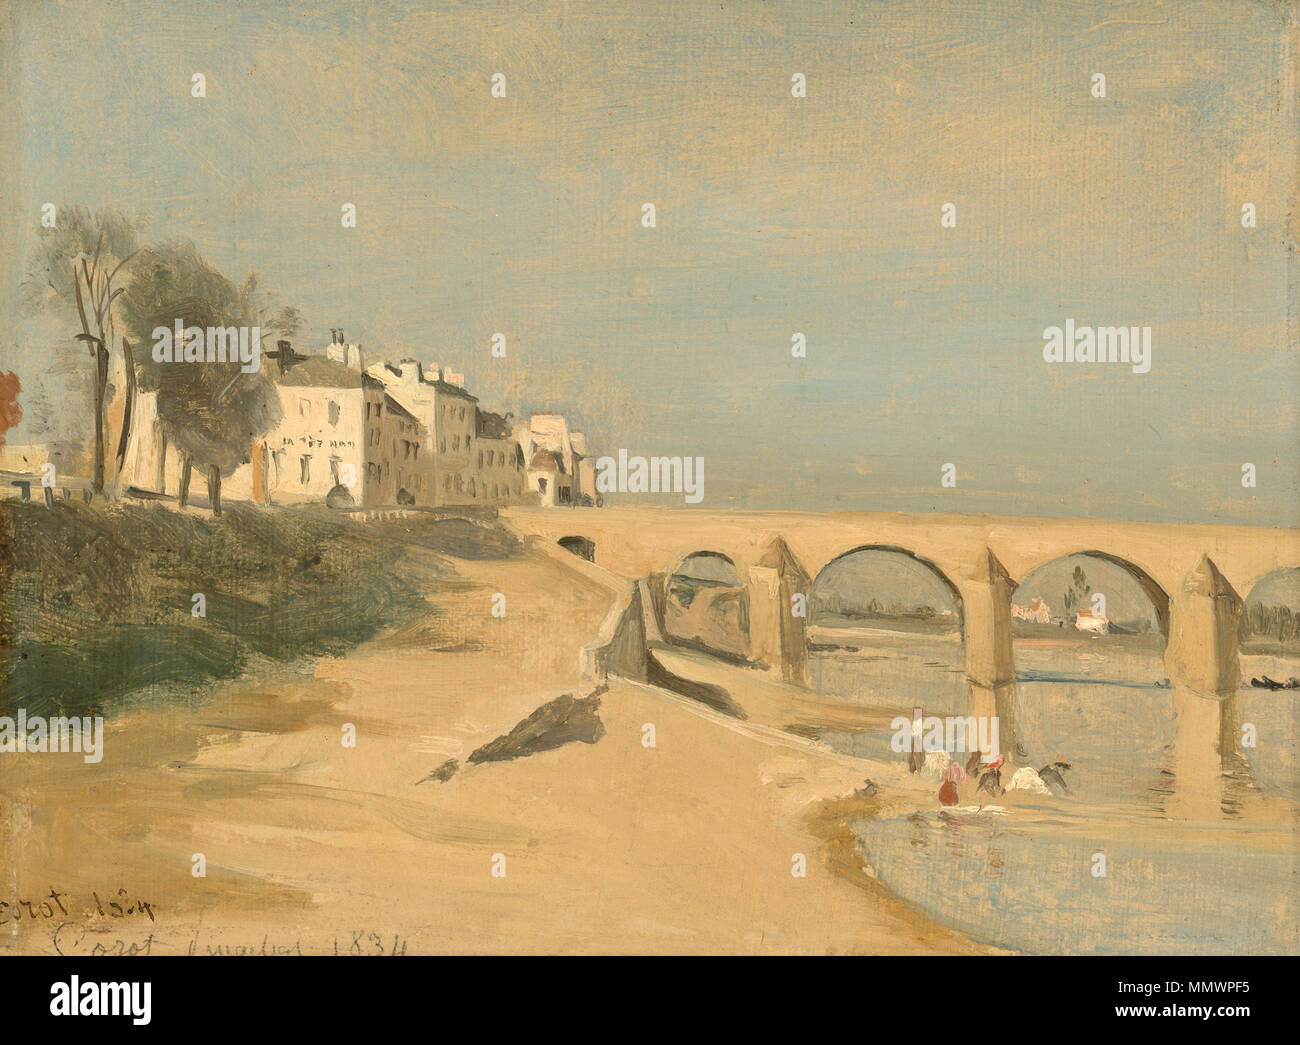 Bridge on the Saône River at Mâcon Painting; oil on paper on canvas; overall: 25 x 33.6 cm (9 13/16 x 13 1/4 in.) framed: 48.6 x 56.5 x 6.4 cm (19 1/8 x 22 1/4 x 2 1/2 in.); Bridge on the Saône River at Mâcon by Jean-Baptiste-Camille Corot, 1834 - Stock Image